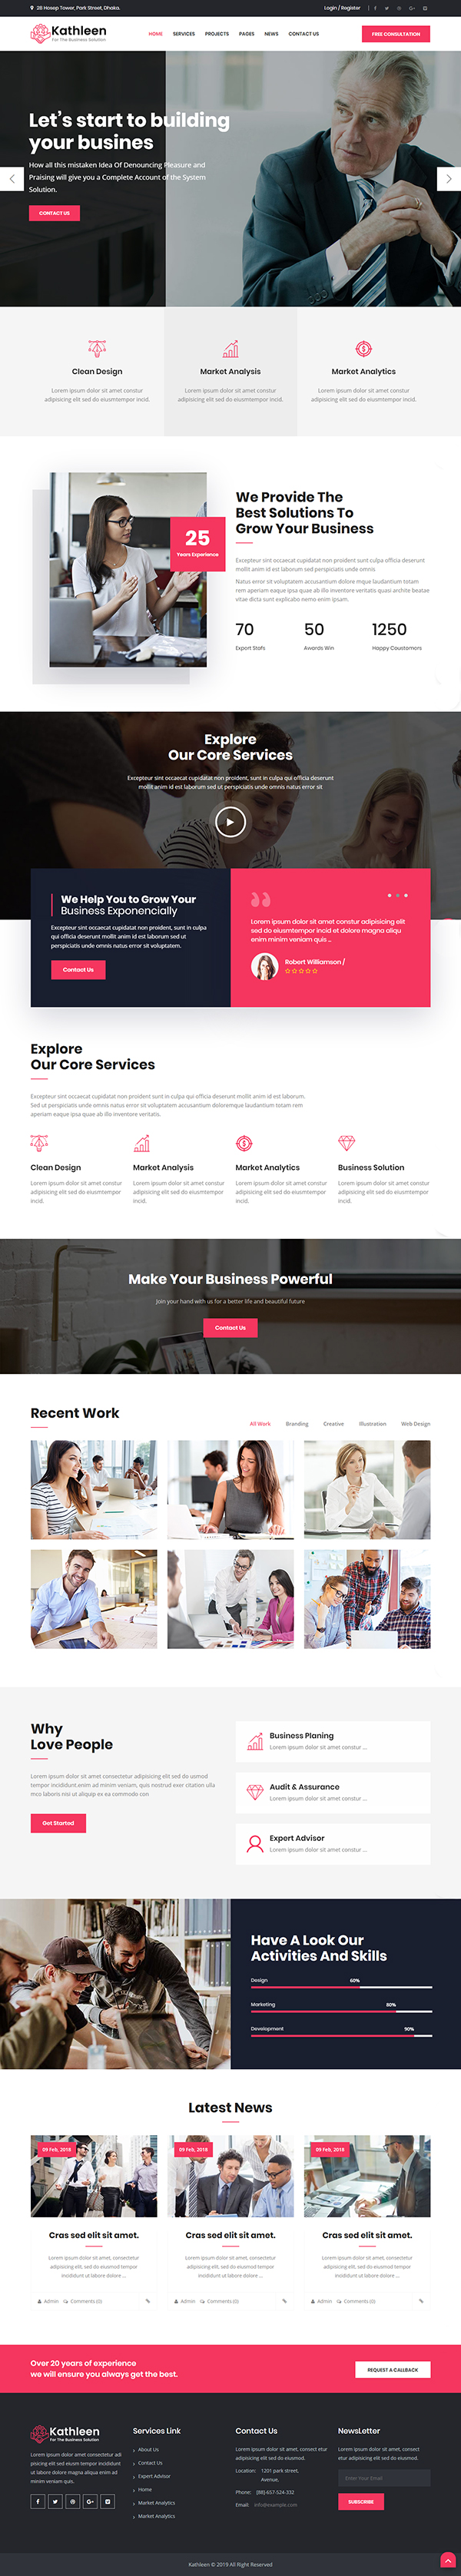 Kathleen - Business Consulting WordPress Theme